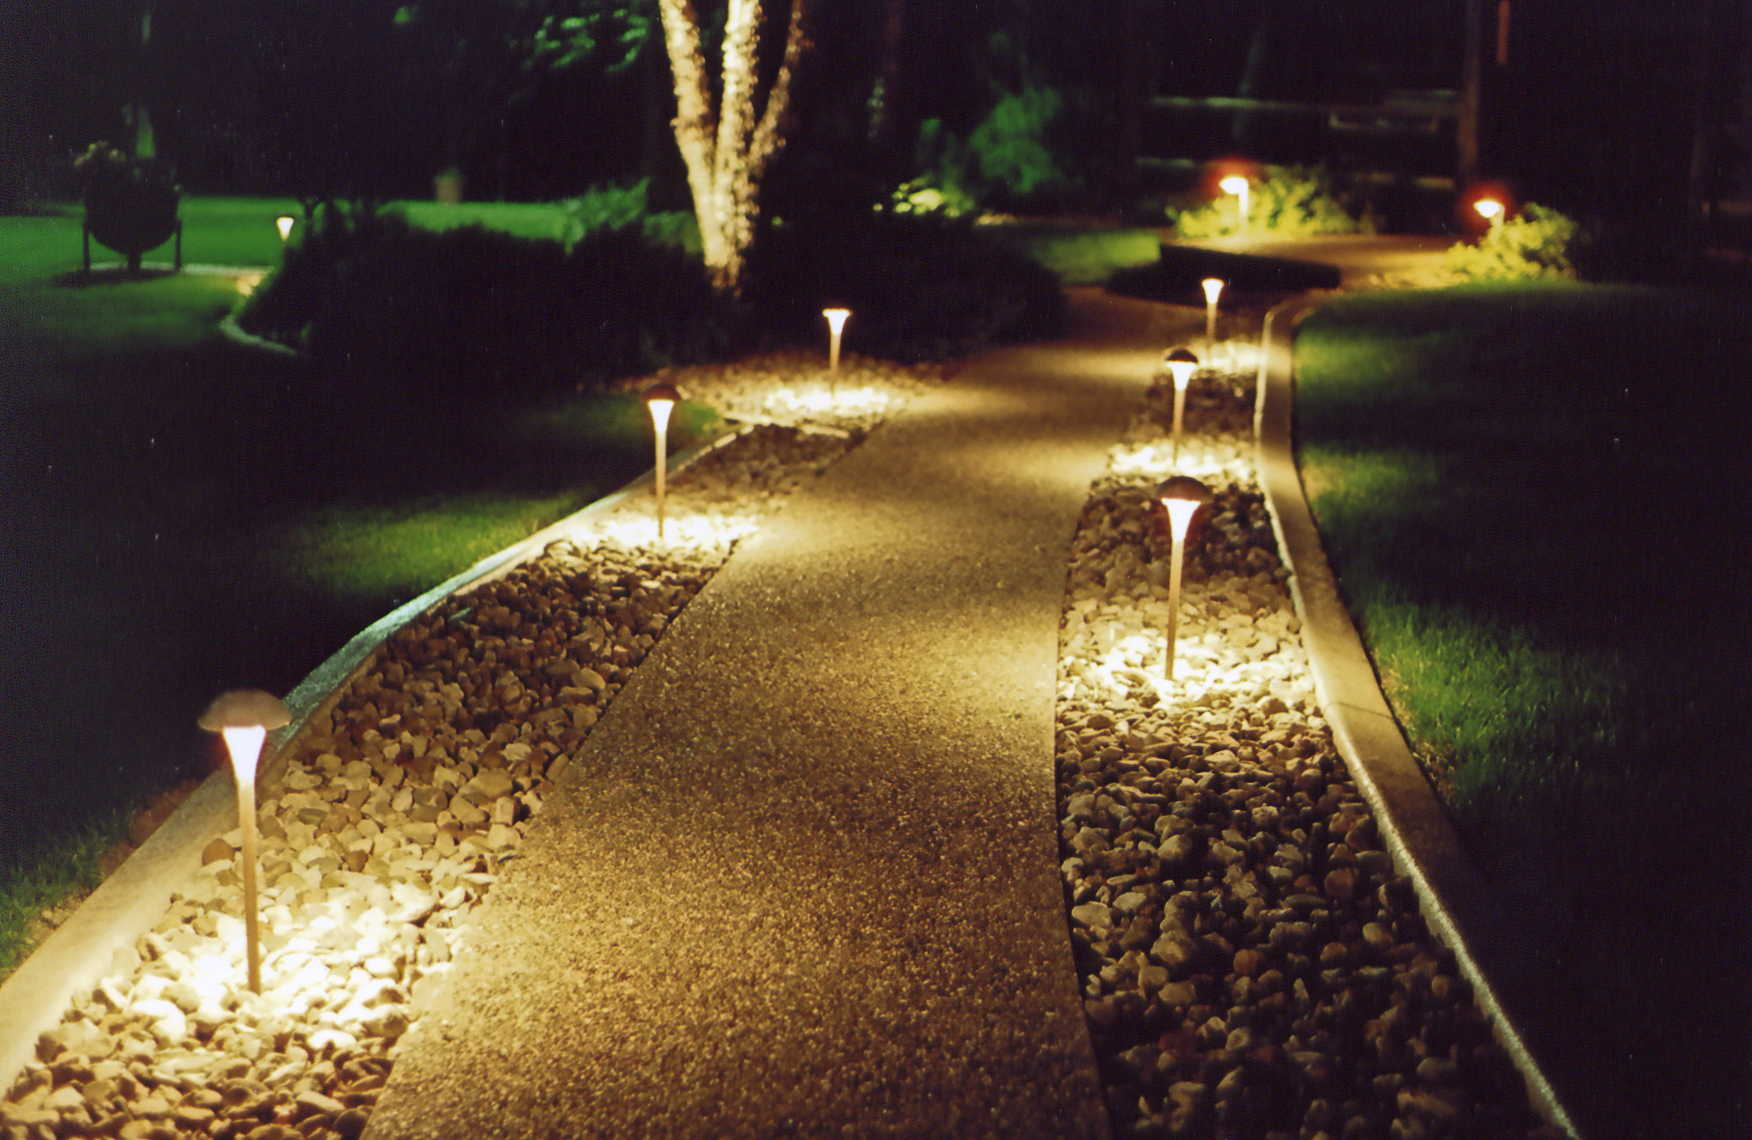 Path and Garden lighting-Lakeland FL Outdoor Lighting Installers-We Offer Outdoor Lighting Services, Landscape Lighting, Low Voltage Lighting, Outdoor LED landscape Lighting, Holiday Lighting, Christmas Lighting, Tree Lighting, Canopy Lighting, Residential outdoor Lighting, Commercial outdoor Lighting, Safety Lighting, Path and Garden Lighting, Mini lights and flood lights, Landscape Lighting installation, Outdoor spot lights, Outdoor LED garden Lighting, Dock Lighting, Accent lights, Deck and patio lights, Security lights, Underwater Lighting, Tree upLighting, Outdoor Lighting repair services, and more.